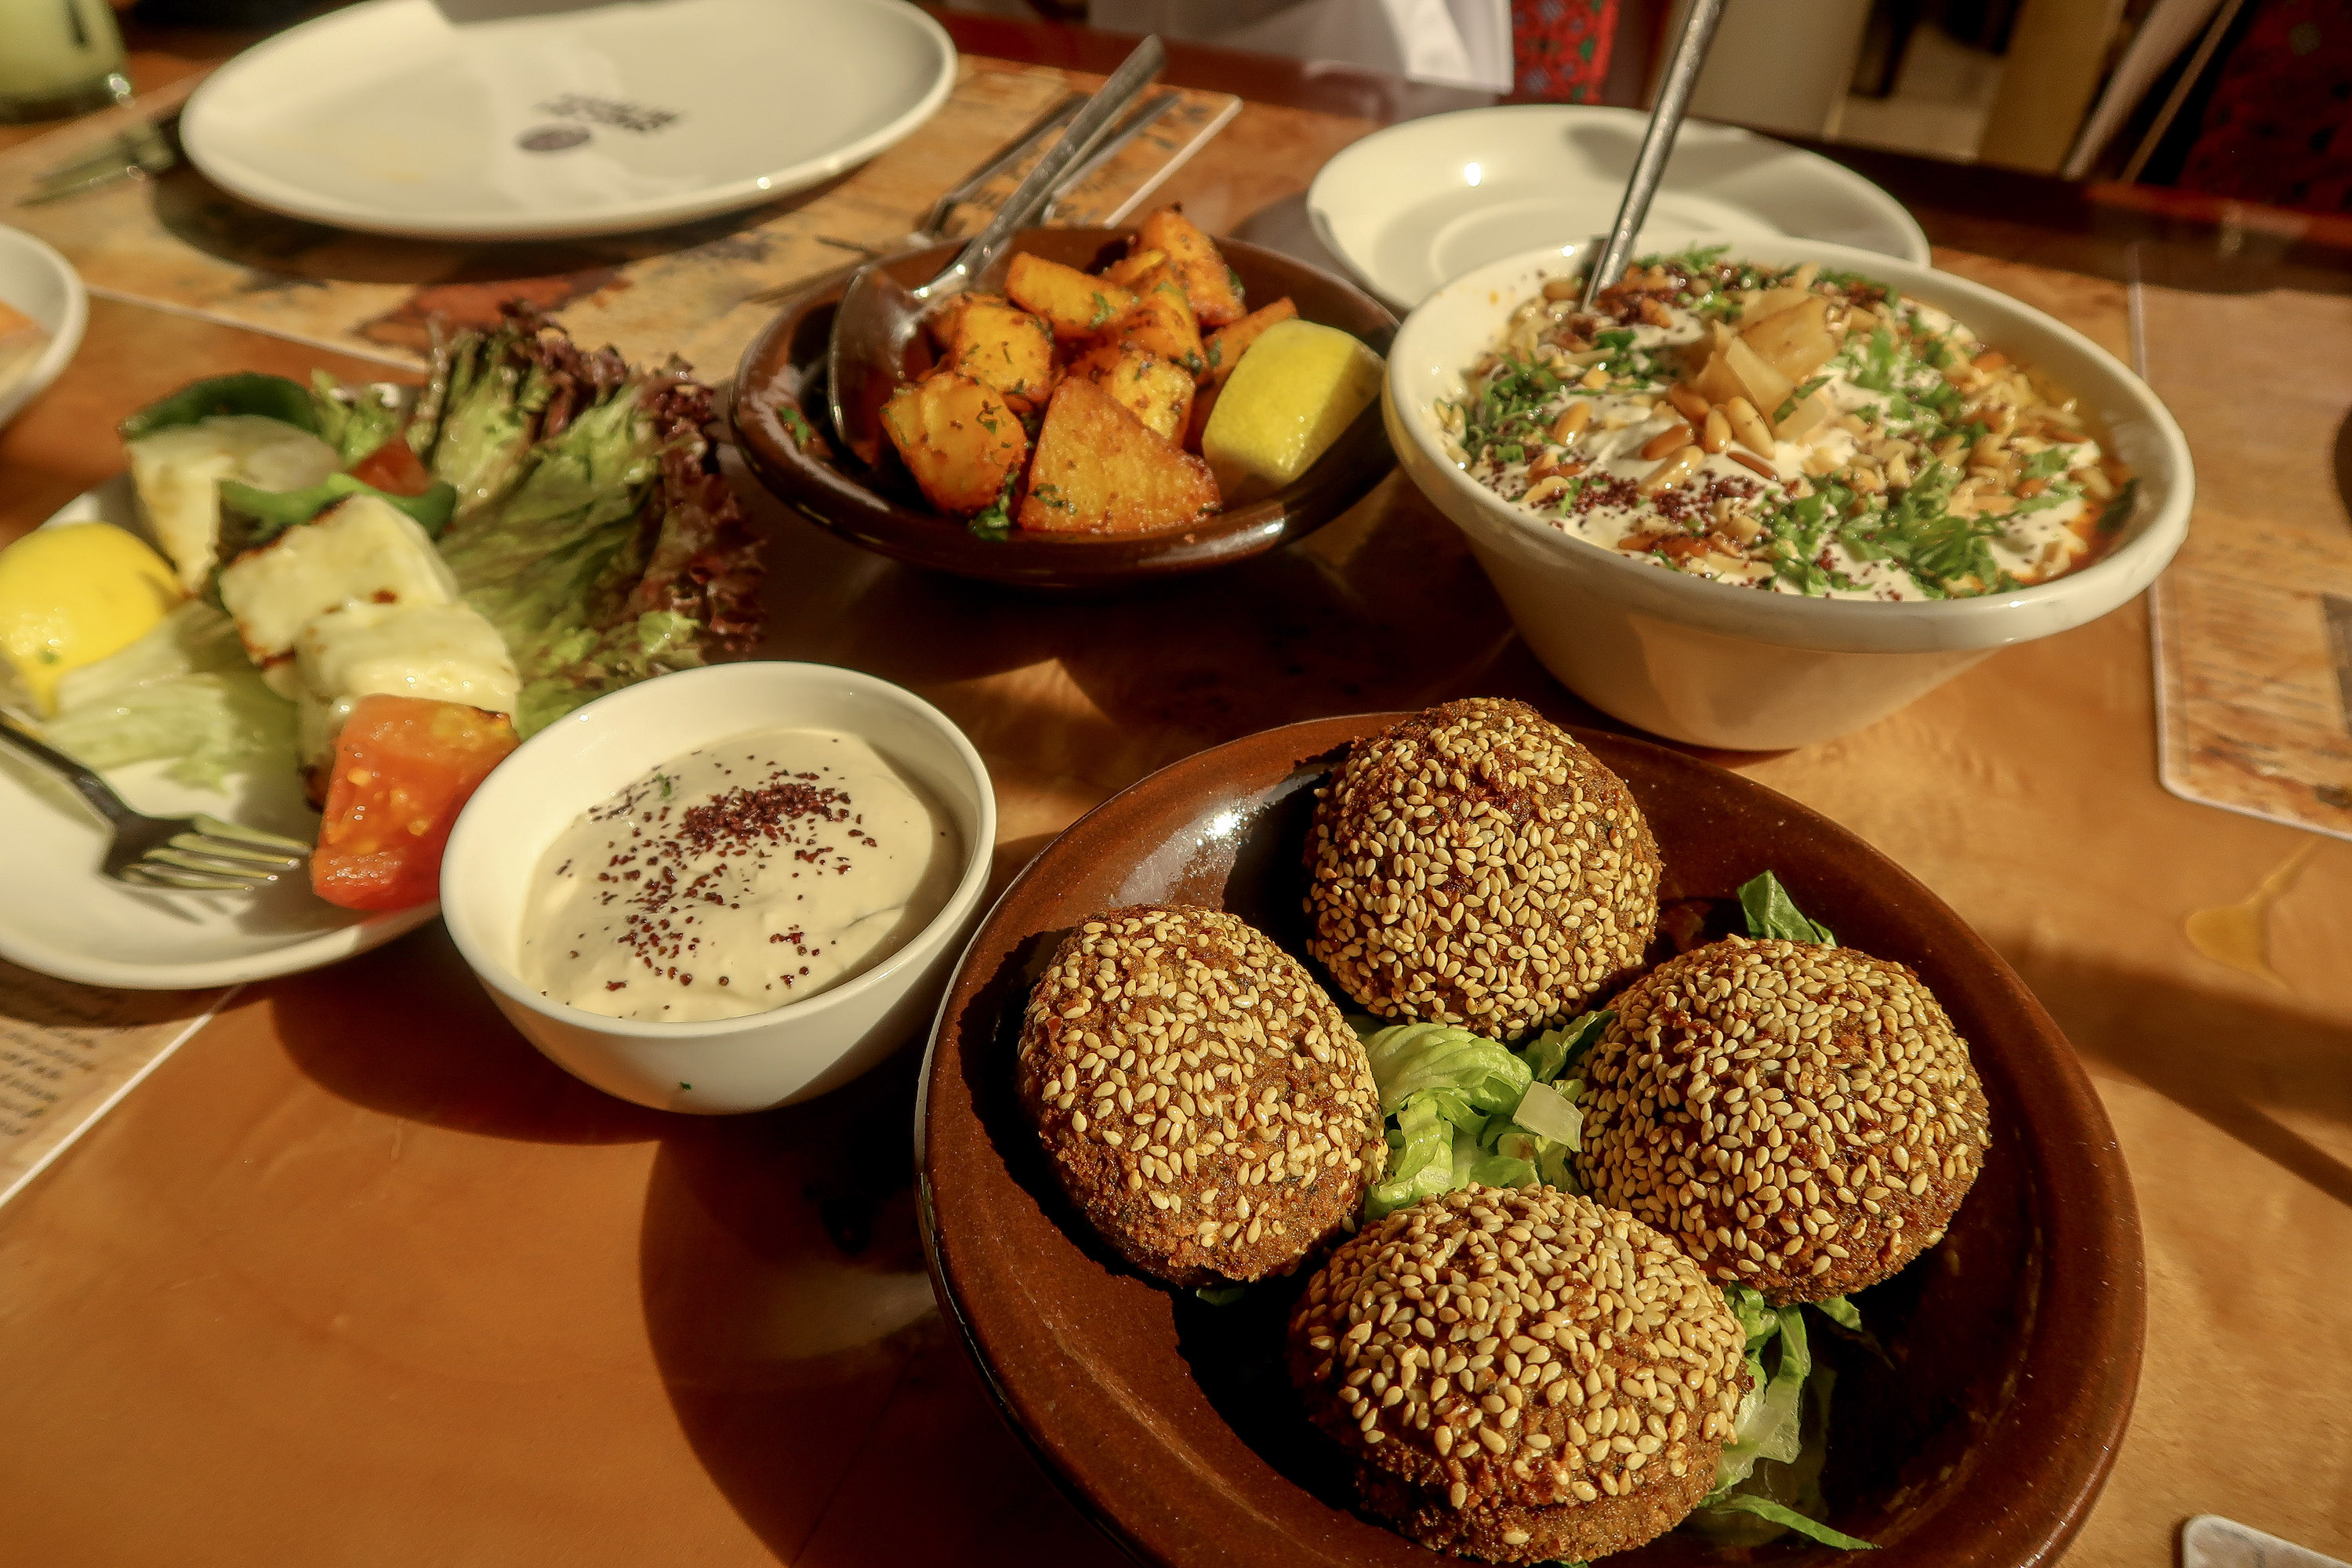 Stuffed Falafel, Palestinian restaurant - eating in Qatar | Visit Qatar | Doha, the capital of Qatar is located in the Middle East and the World Cup 2022 location. Find out how I spent 4 days on my visit to Qatar | Travel Guide & Tips | Elle Blonde Luxury Lifestyle Destination Blog